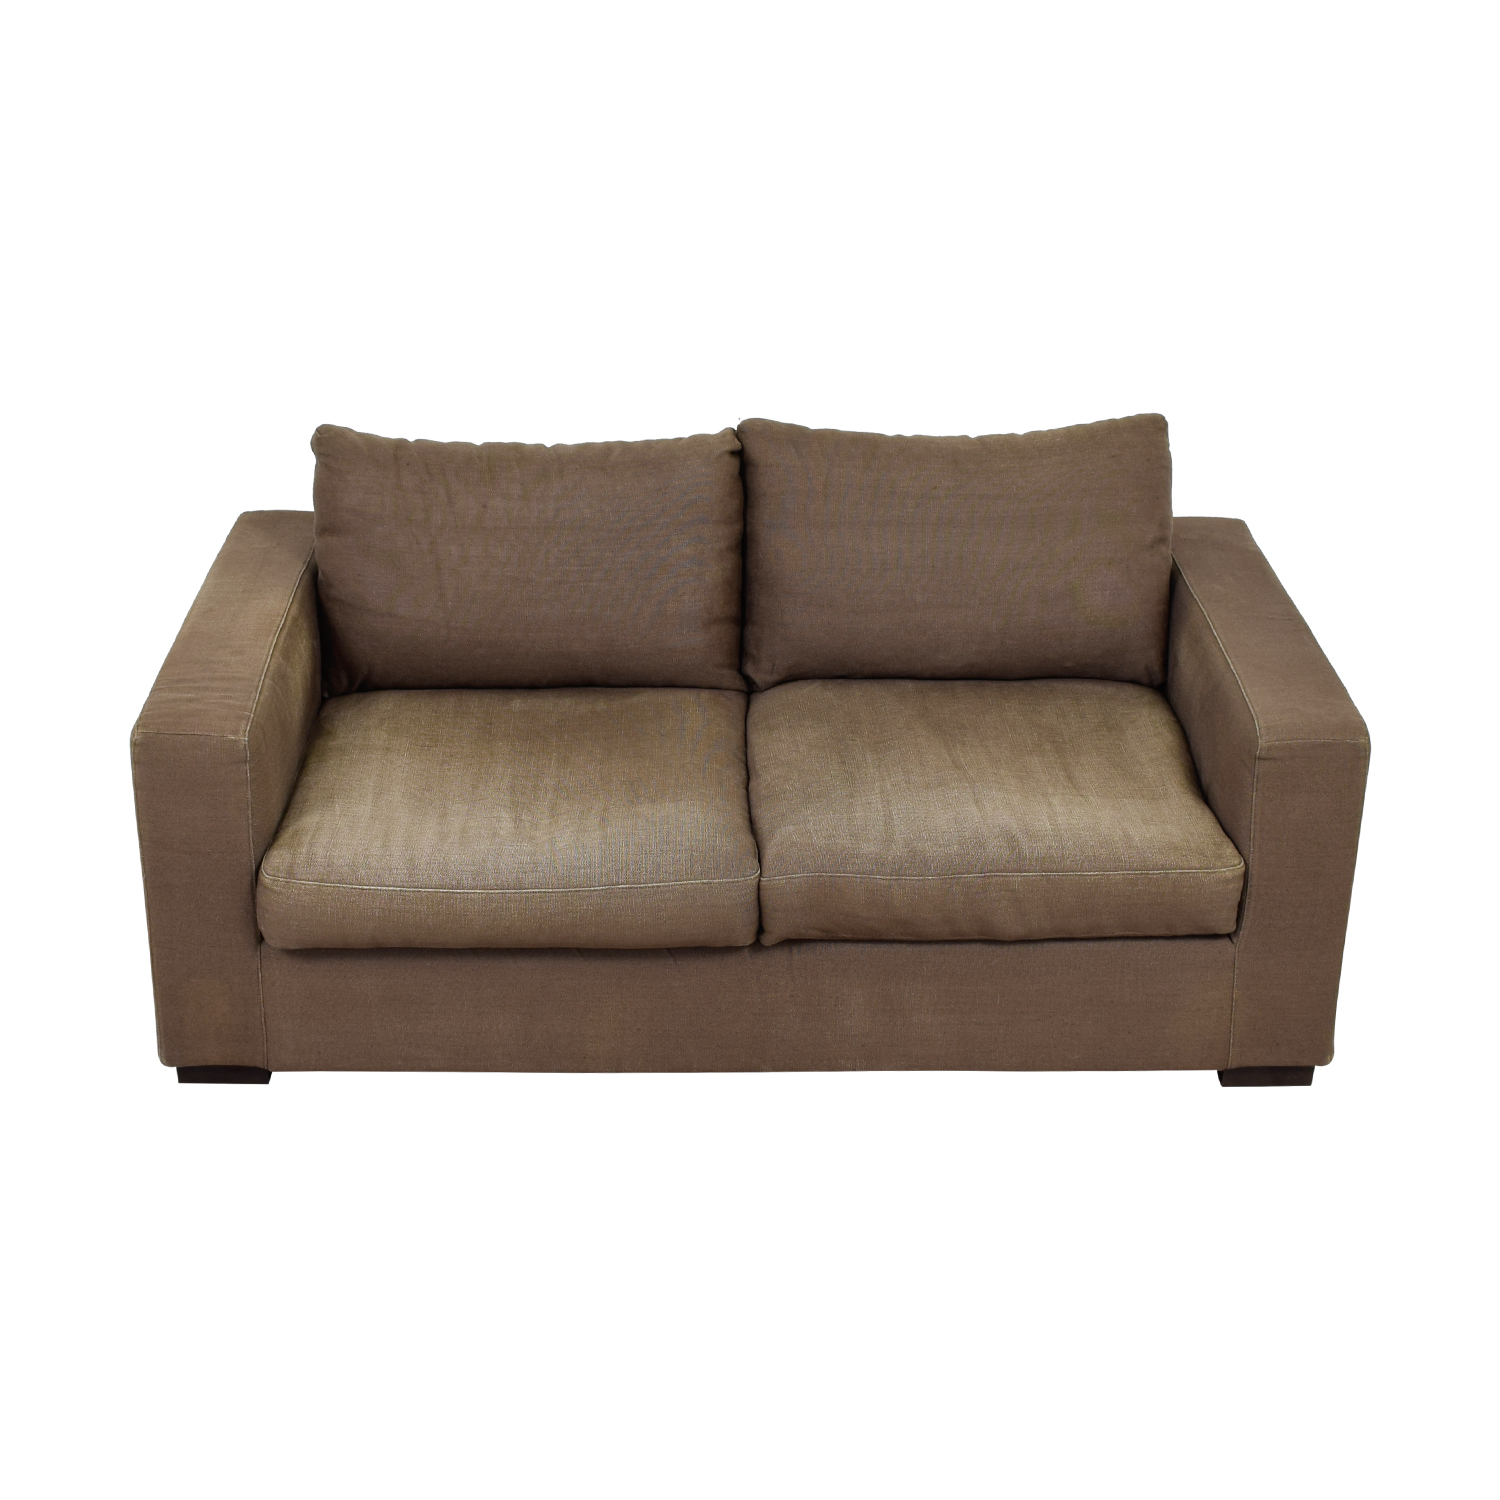 Tissus Colbert Tissus Colbert Grey Two-Cushion Sofa price